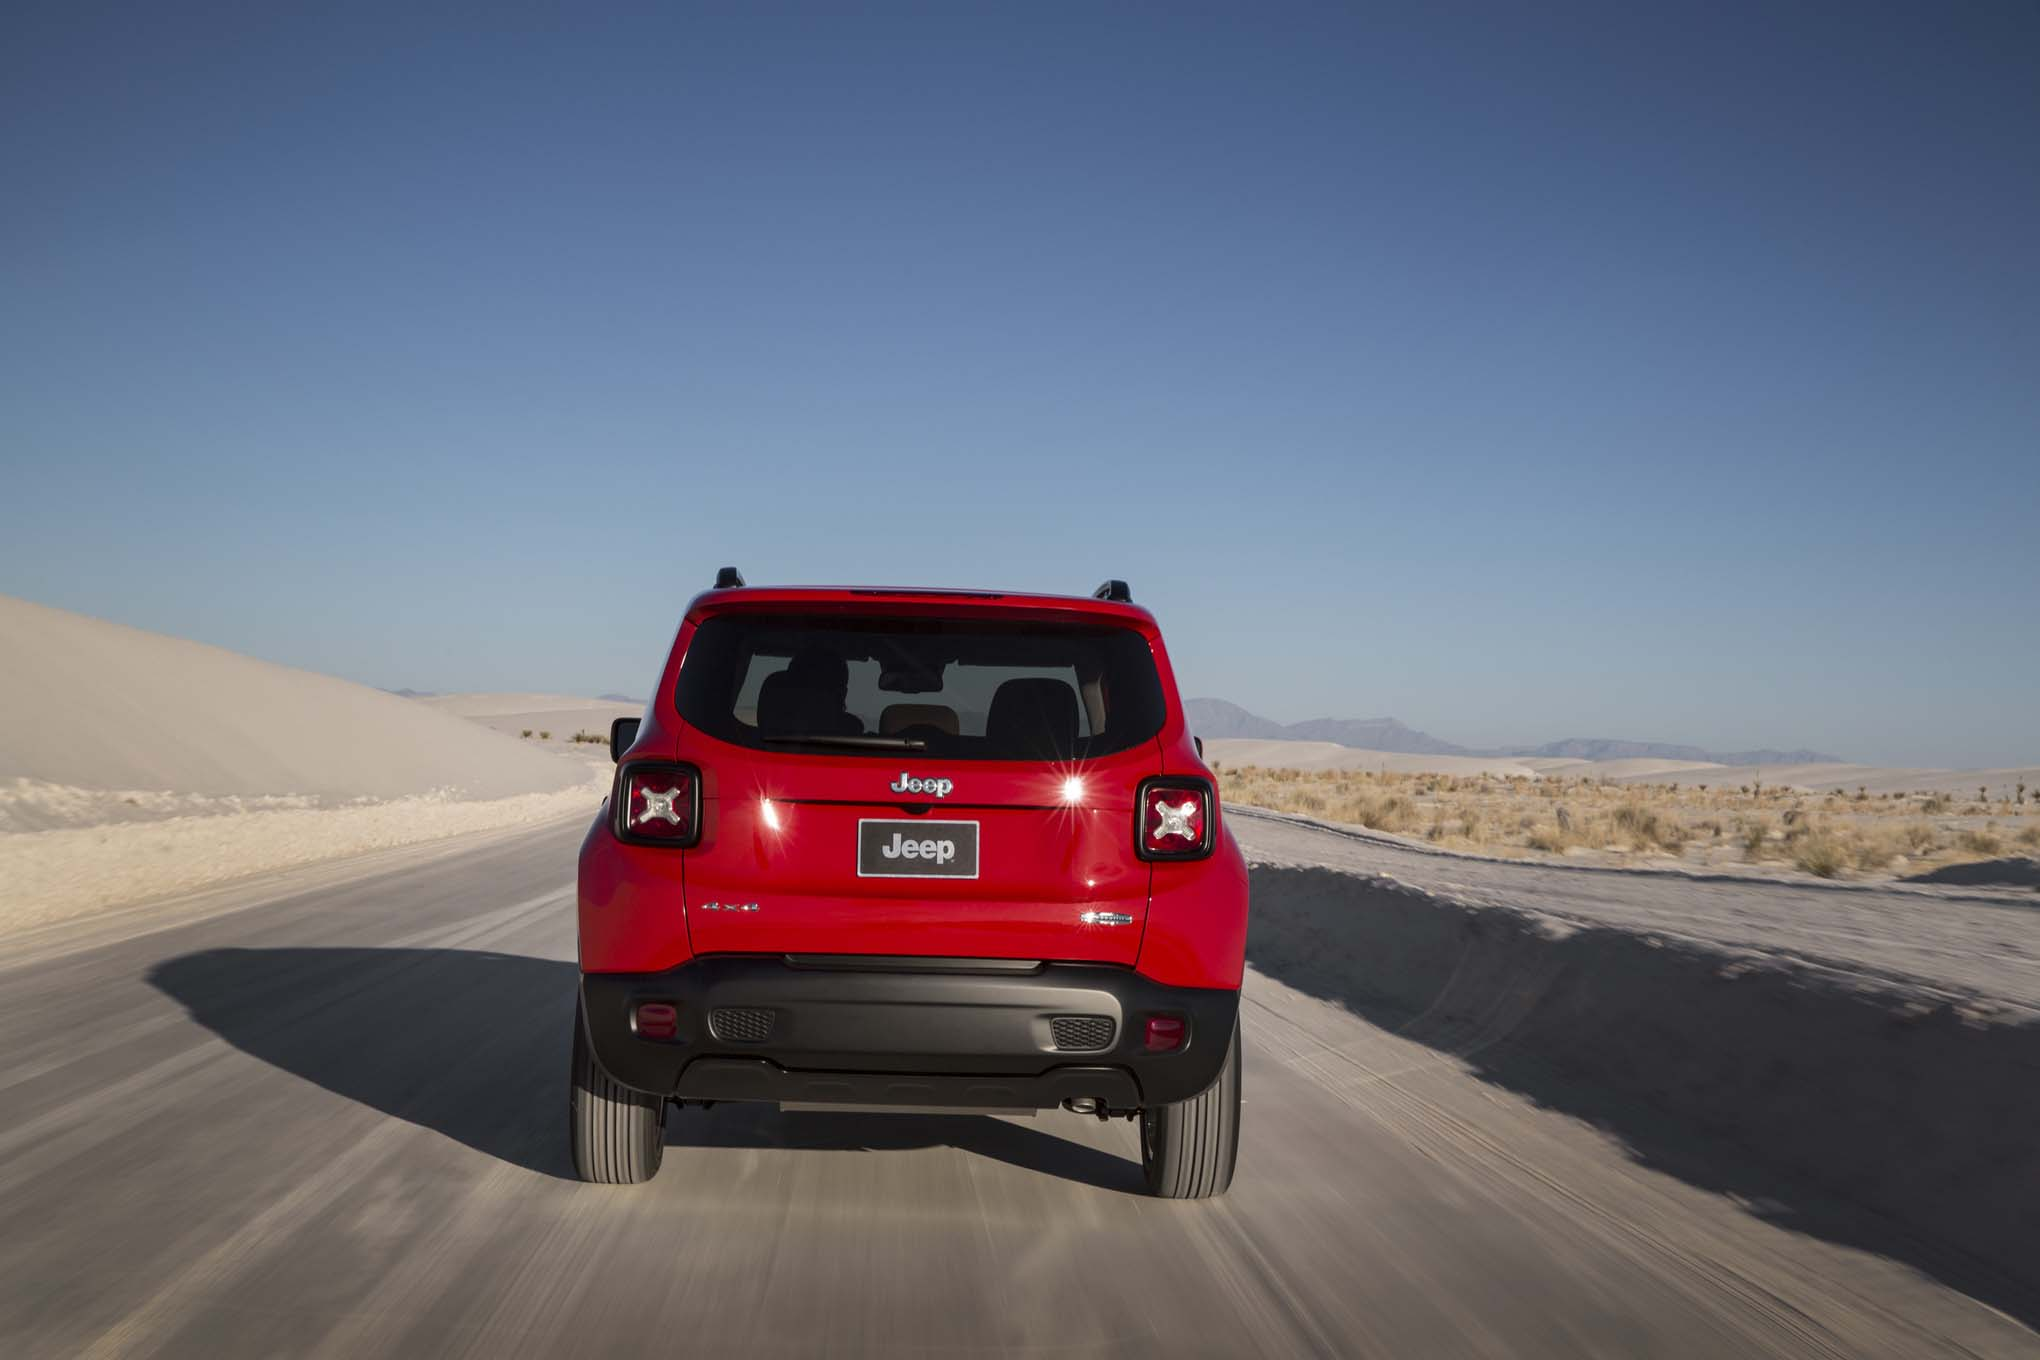 2015 Jeep Renegade Lattitude rear end in motion 03